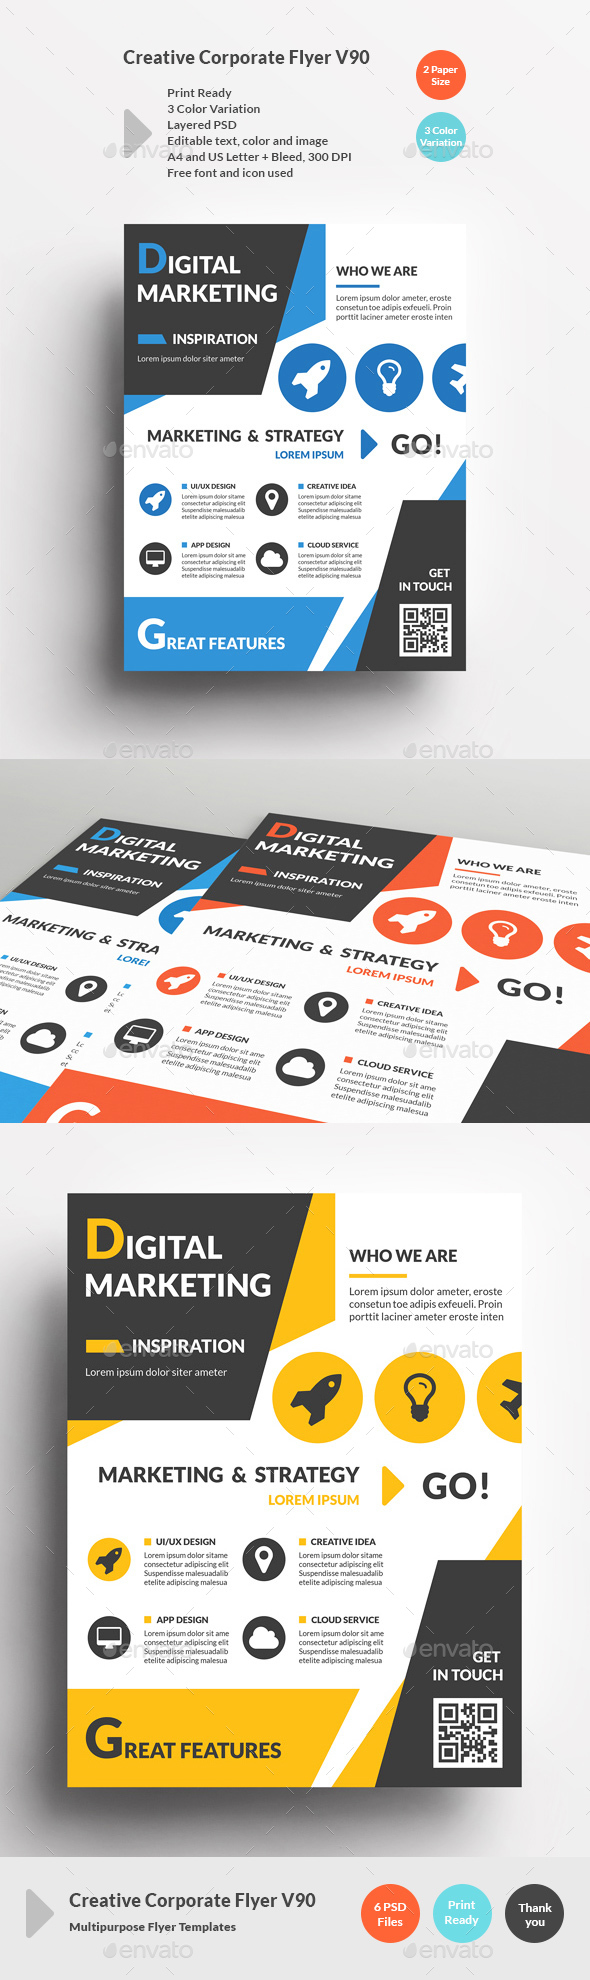 Creative Corporate Flyer V90 - Corporate Flyers